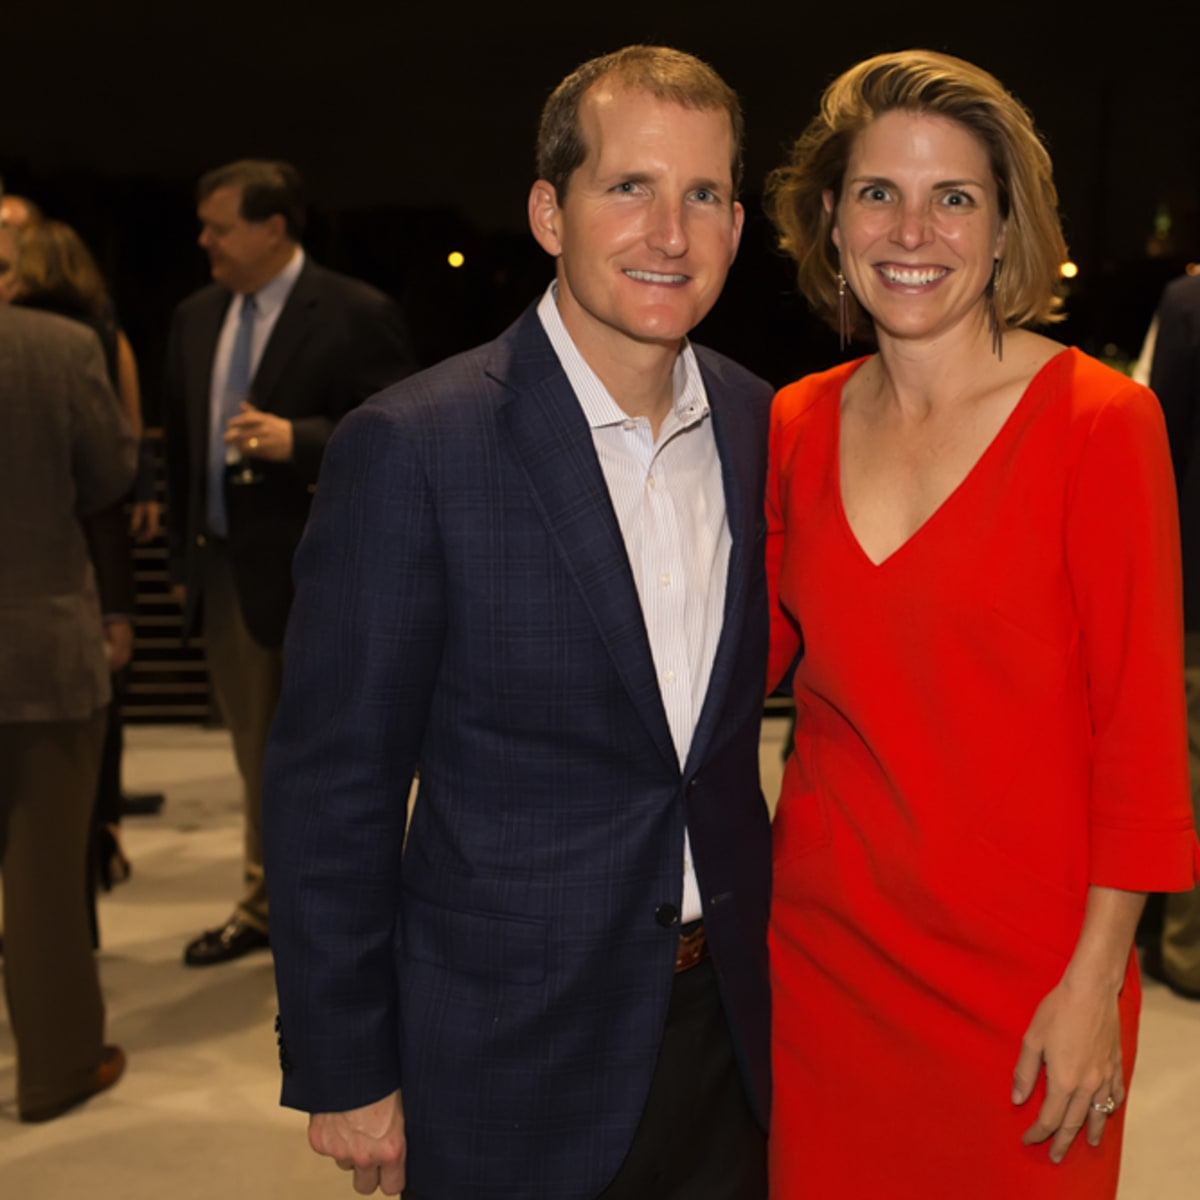 News, Shelby, Buffalo Bayou Partnership gala, Nov. 2015, Carleton Riser and Winifred Riser